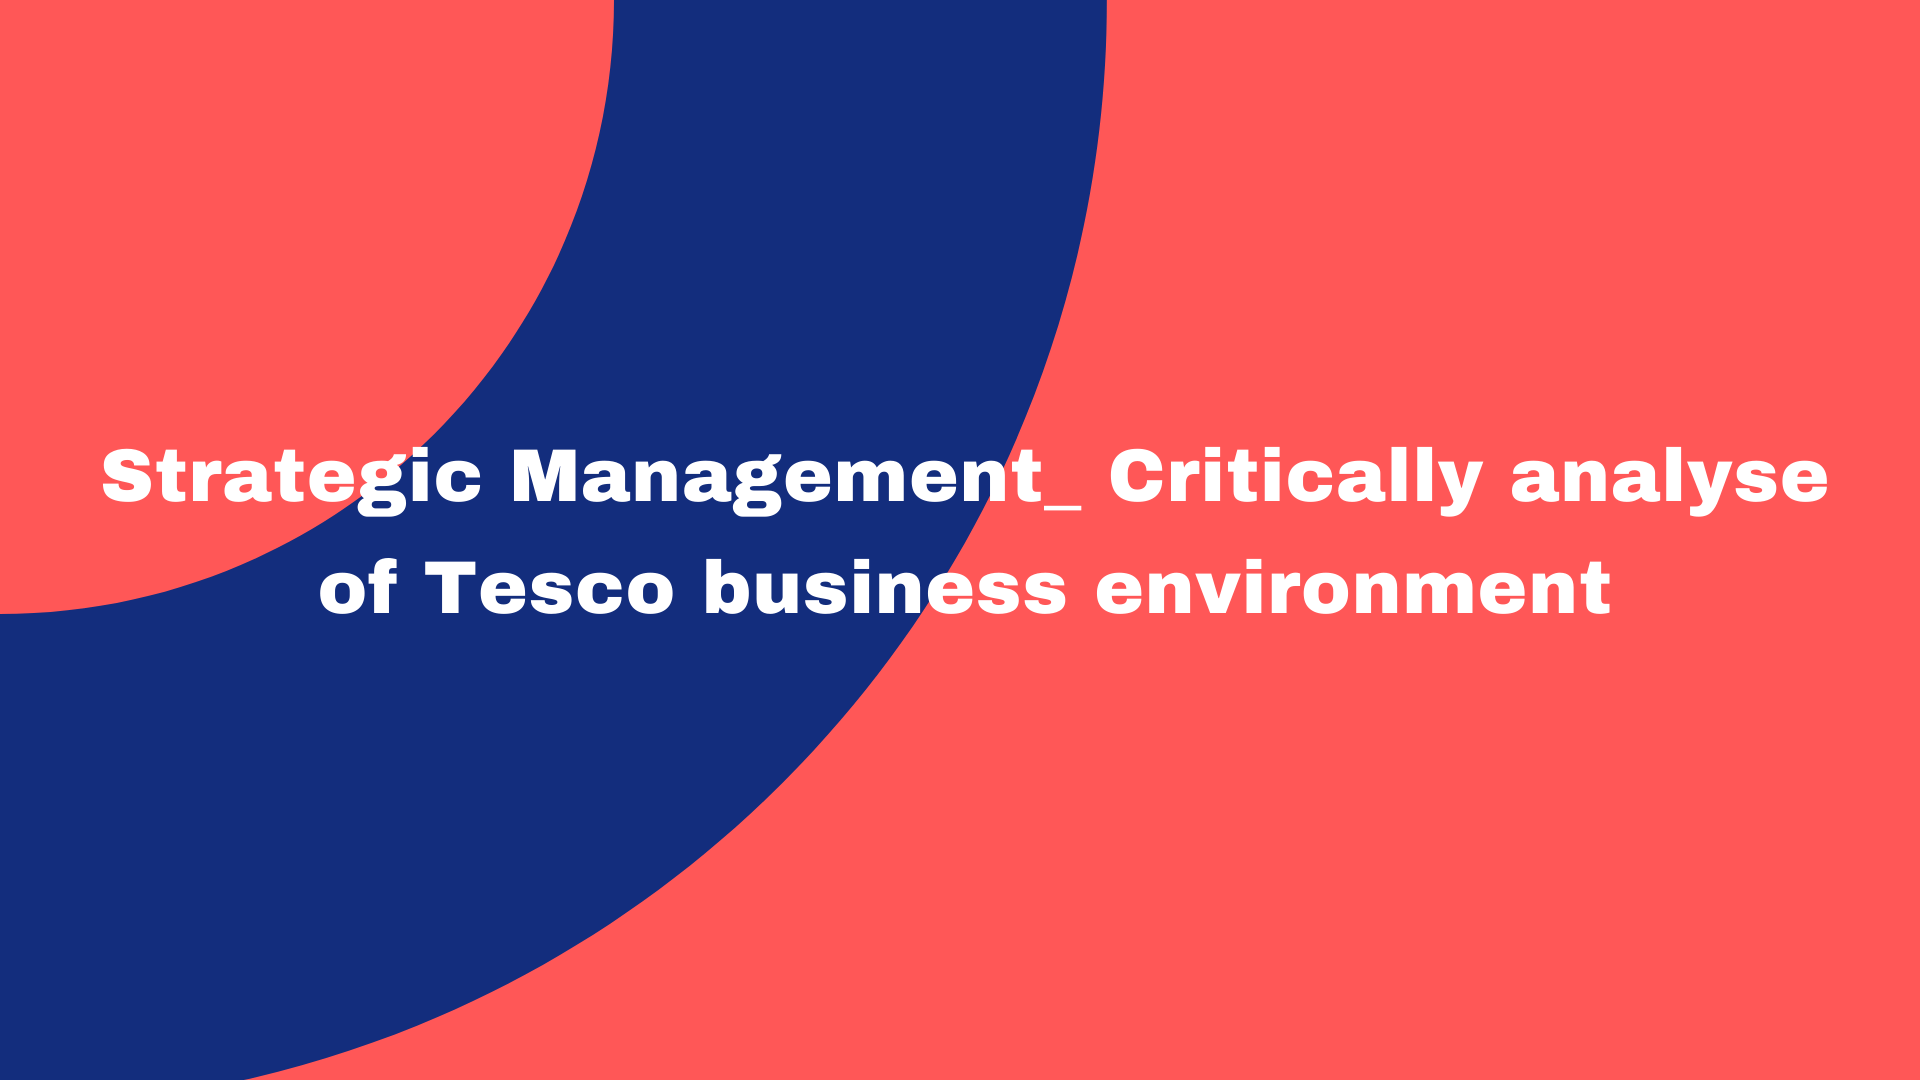 Strategic Management_ Critically analyse of Tesco business environment